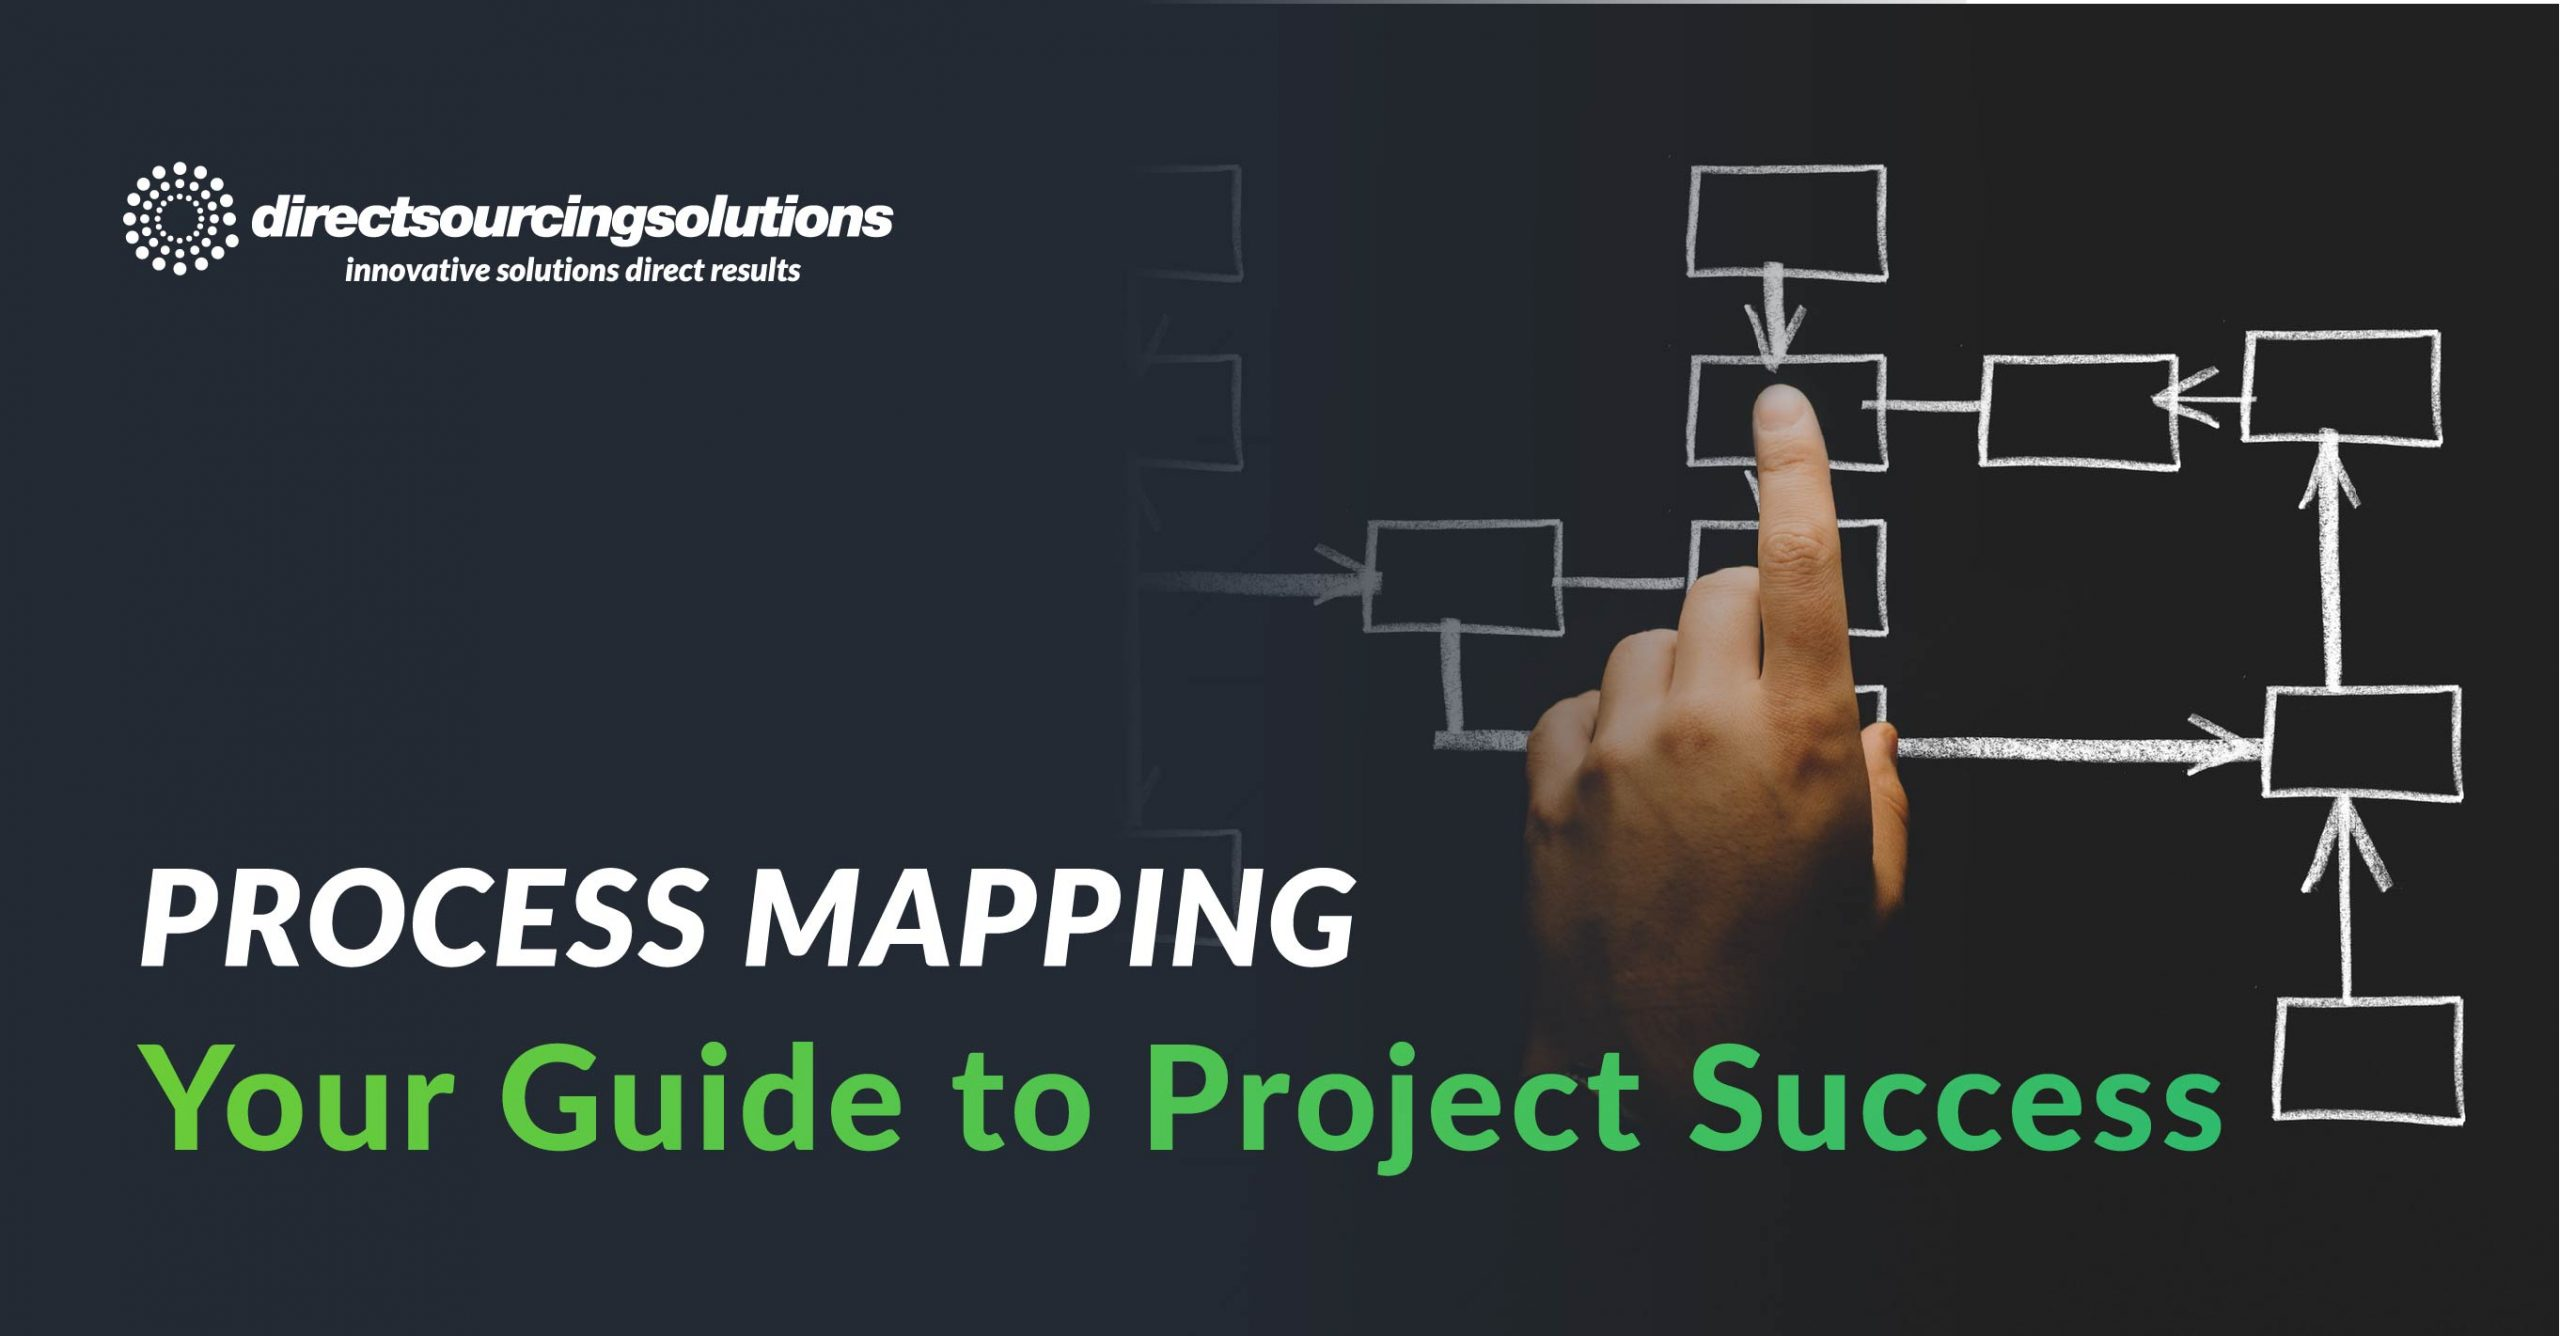 Process Mapping Your Guide to Project Success-11